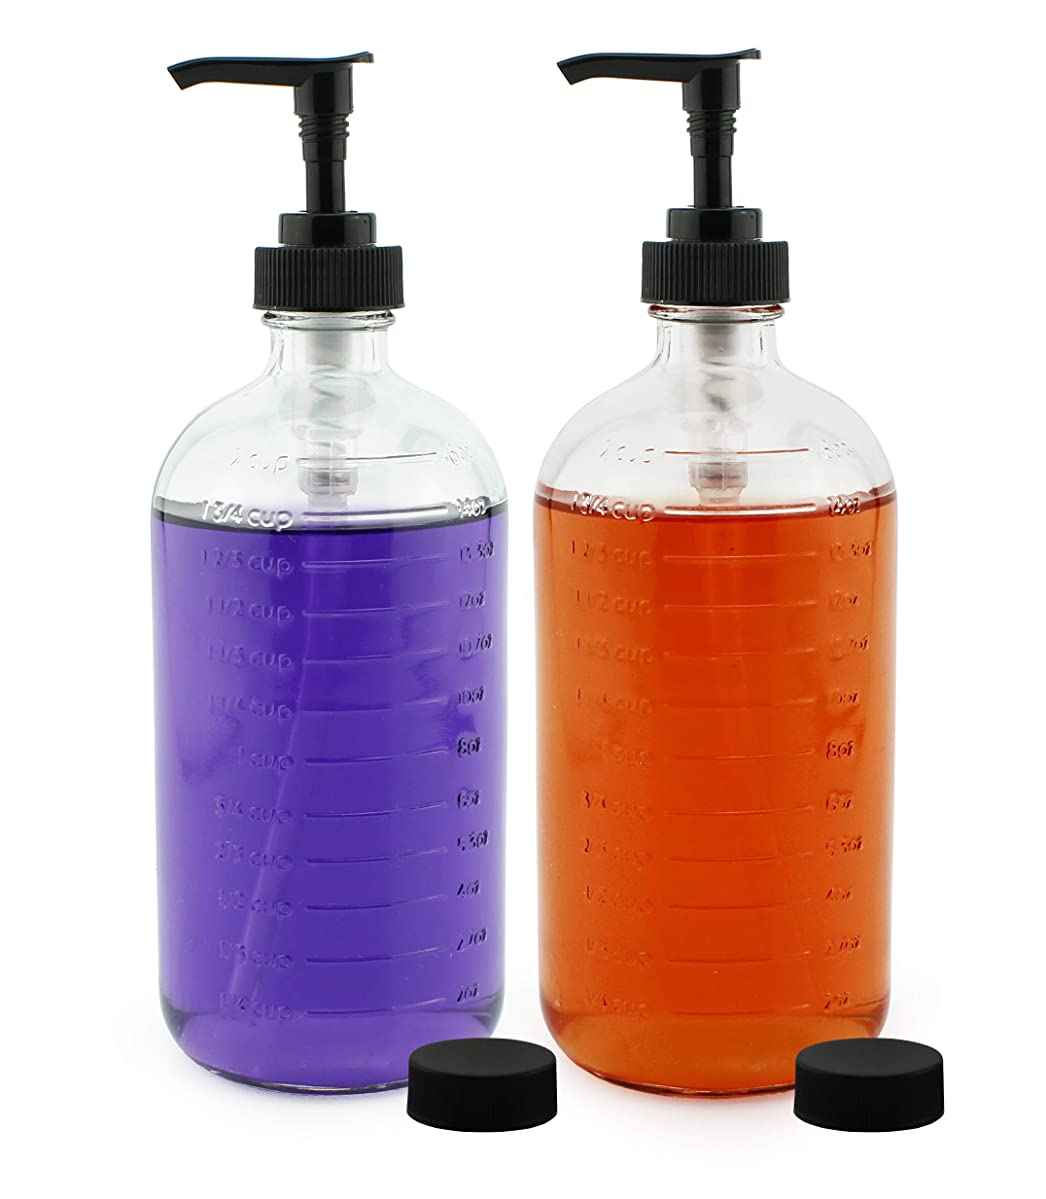 Cornucopia Brands 16-Ounce Clear Glass Pump Bottles with Measurements (2-Pack); Graduated Markings Soap and Lotion Dispensers